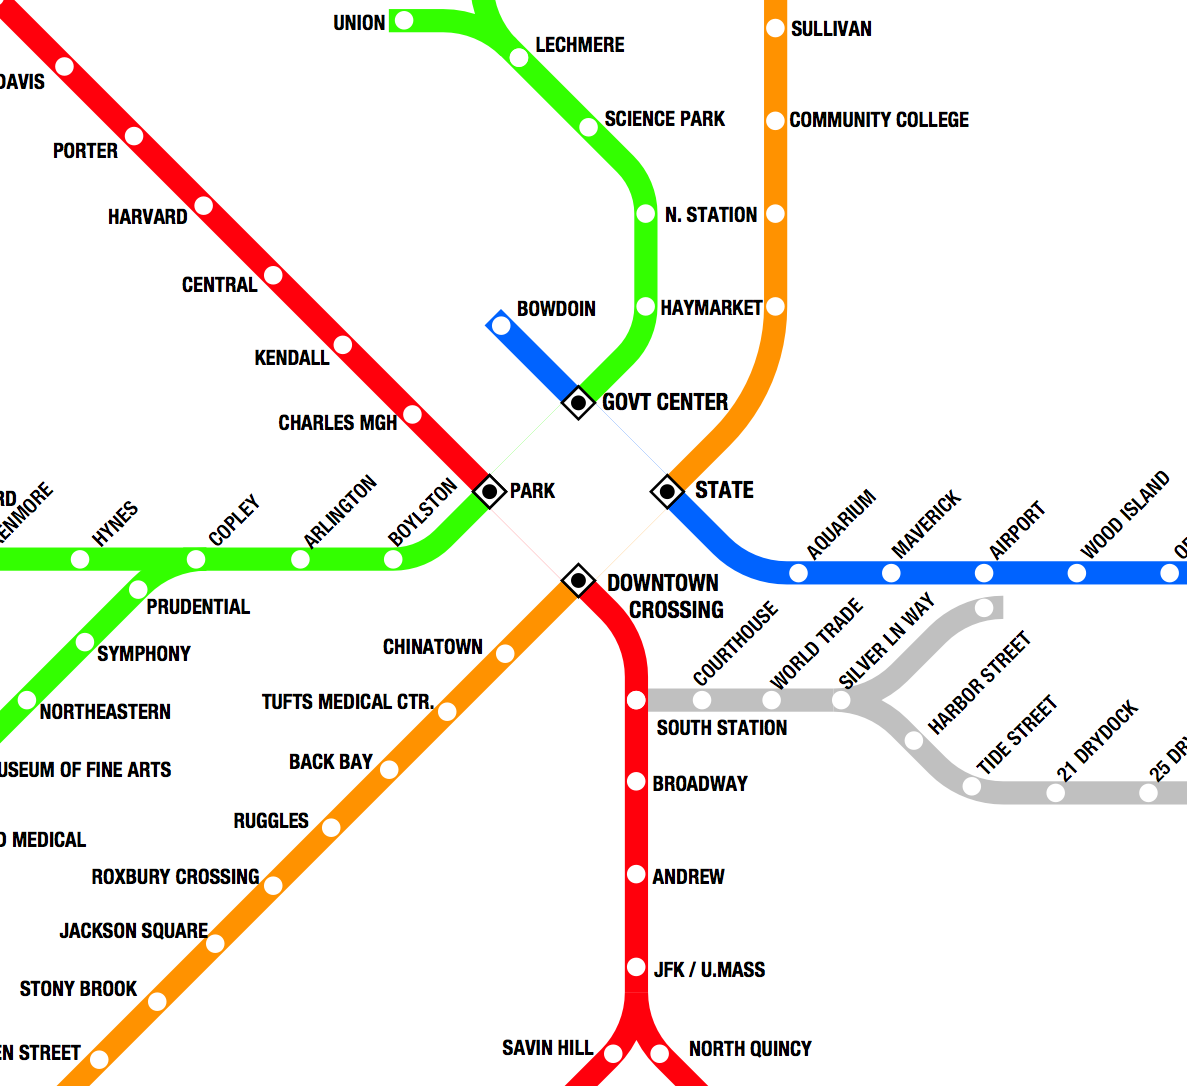 To visualize the impact of the gap between our northern and southern rail systems we have only to imagine how our transit lines would function if they were similarly divided, as shown in this modification of the MBTA transit map. Park Street would have to be a large terminal with a dozen platforms, from which trains would back out to begin each run. Absurd as this may seem, this is exactly how our commuter rail system works.  [© MBTA / Brad Bellows]